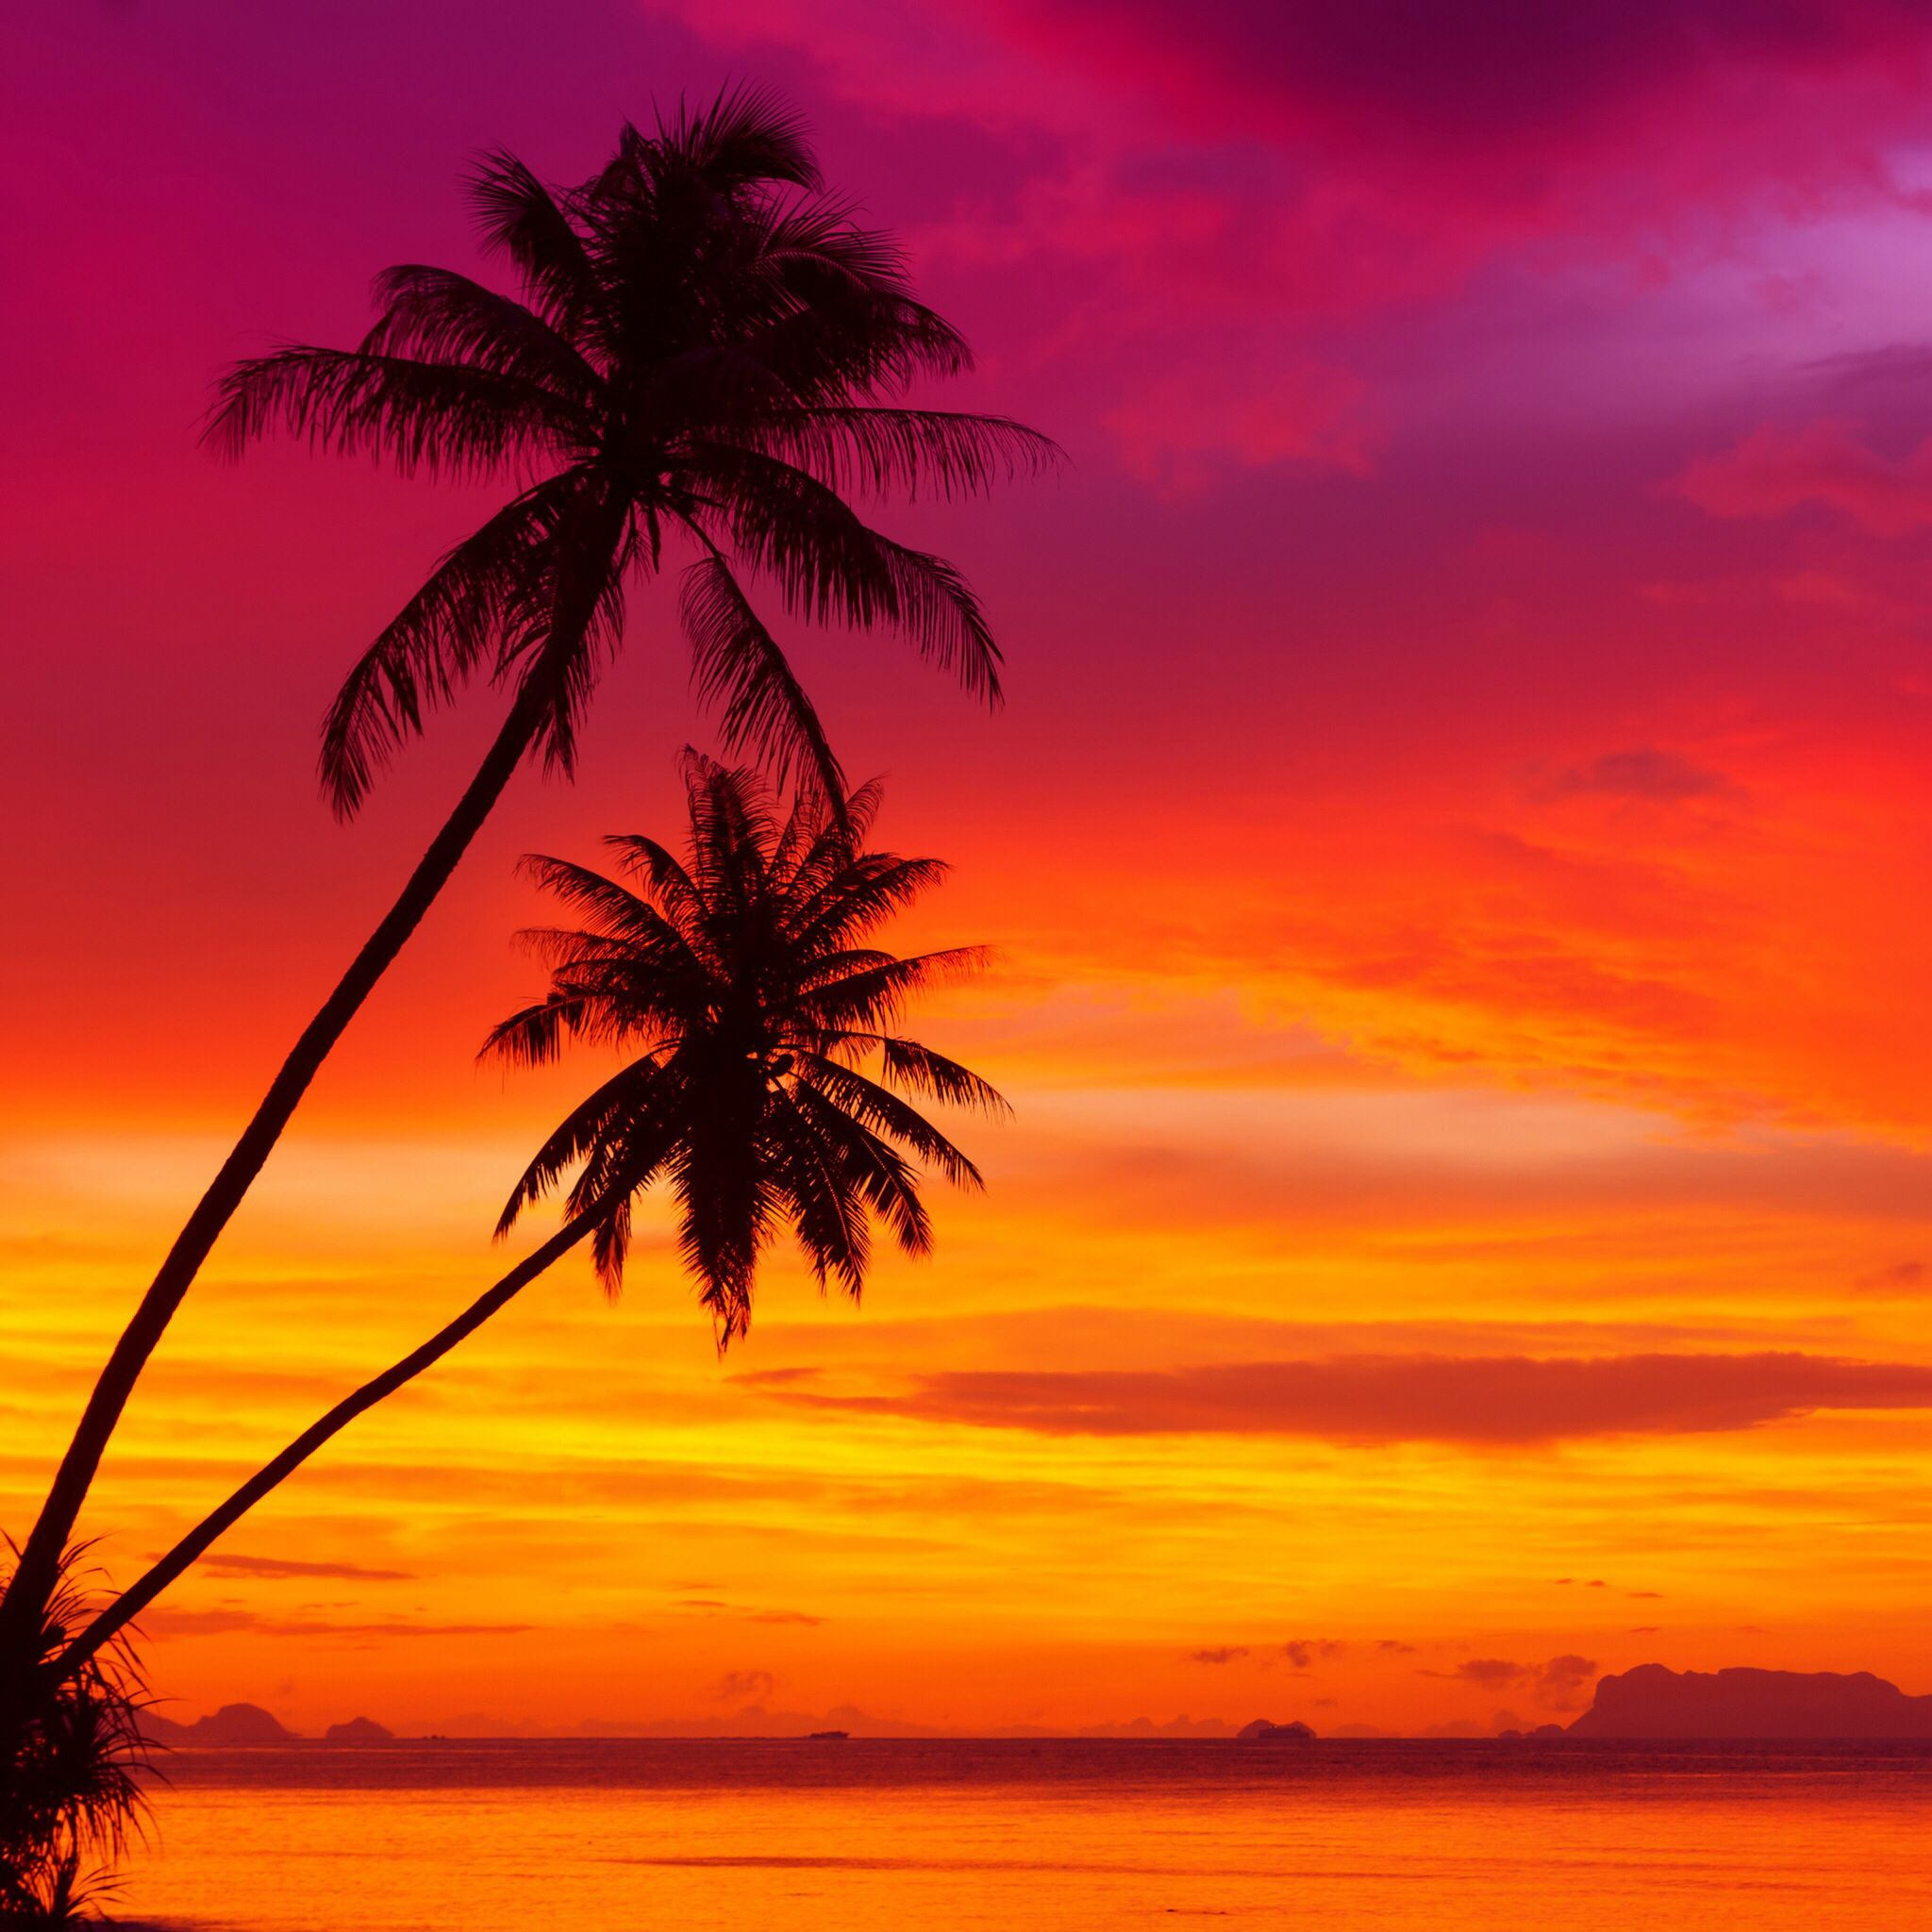 Pin By Paty L On Wallpaper Places Tropical Vibe Sunset Landscape Sunset Wallpaper Scenery Tropics palm trees sunset clouds sky